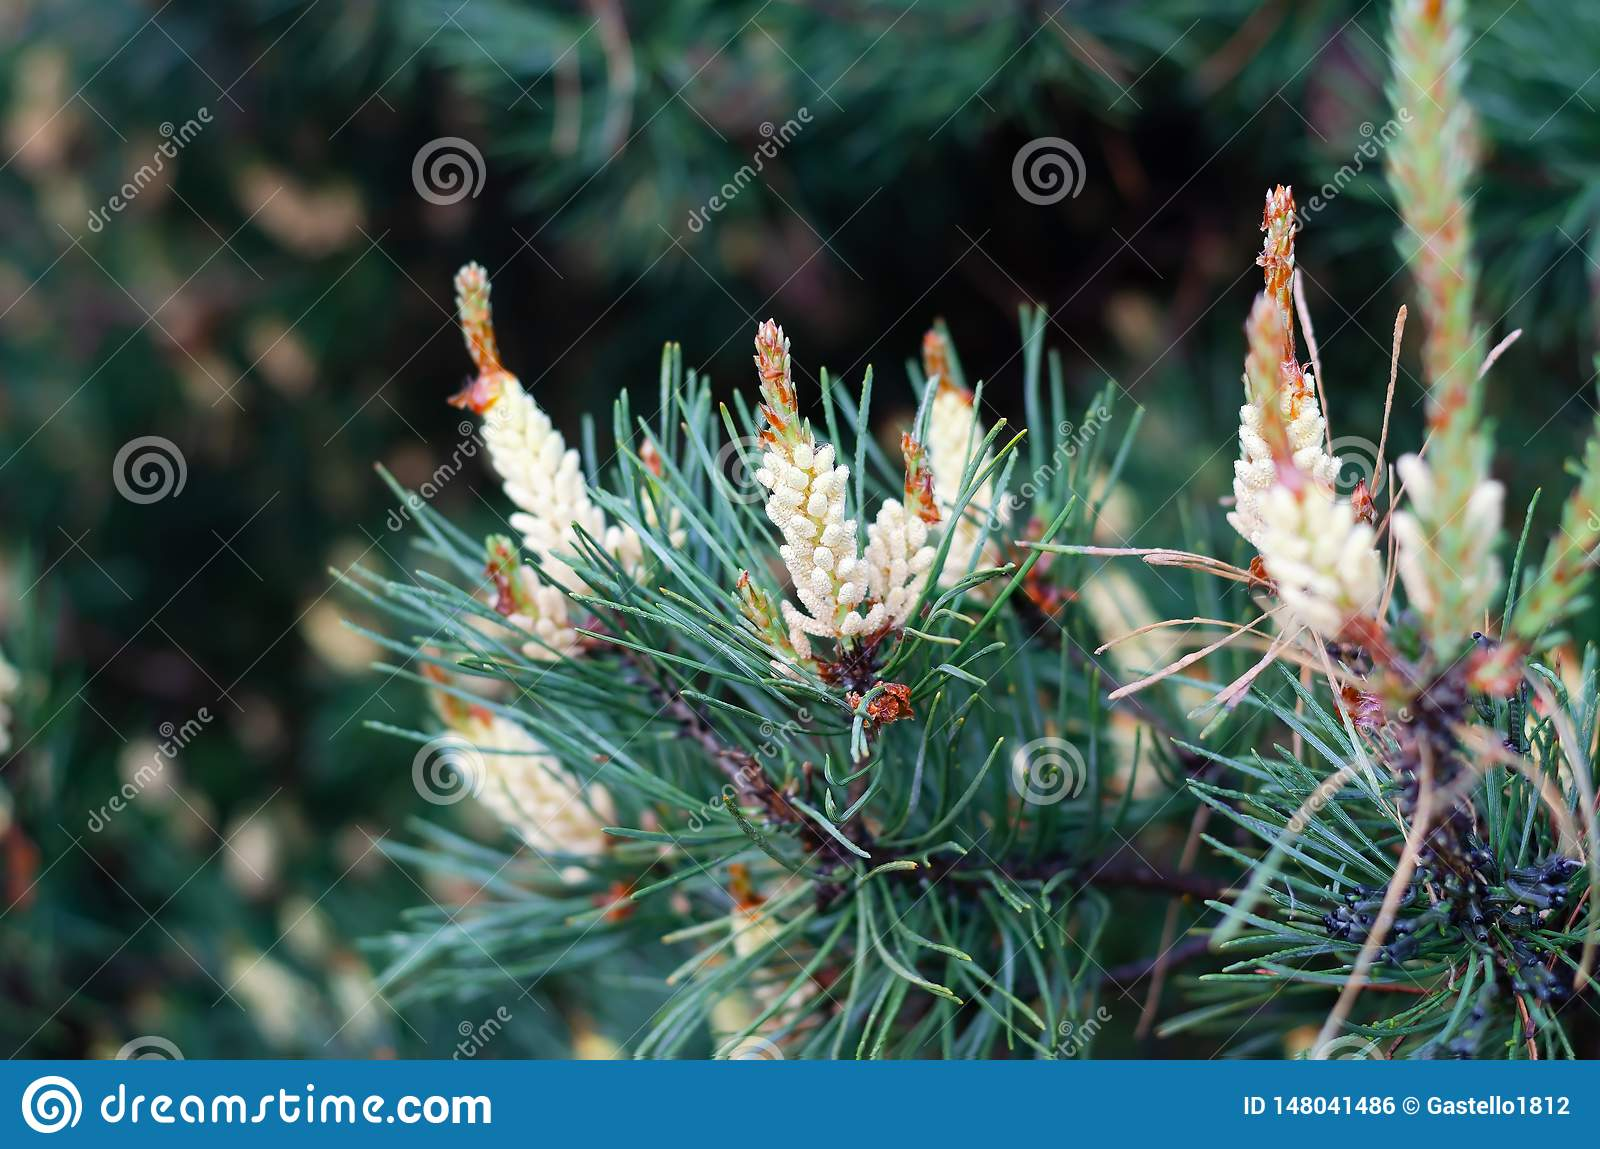 Flowering pine branches in the spring forest.